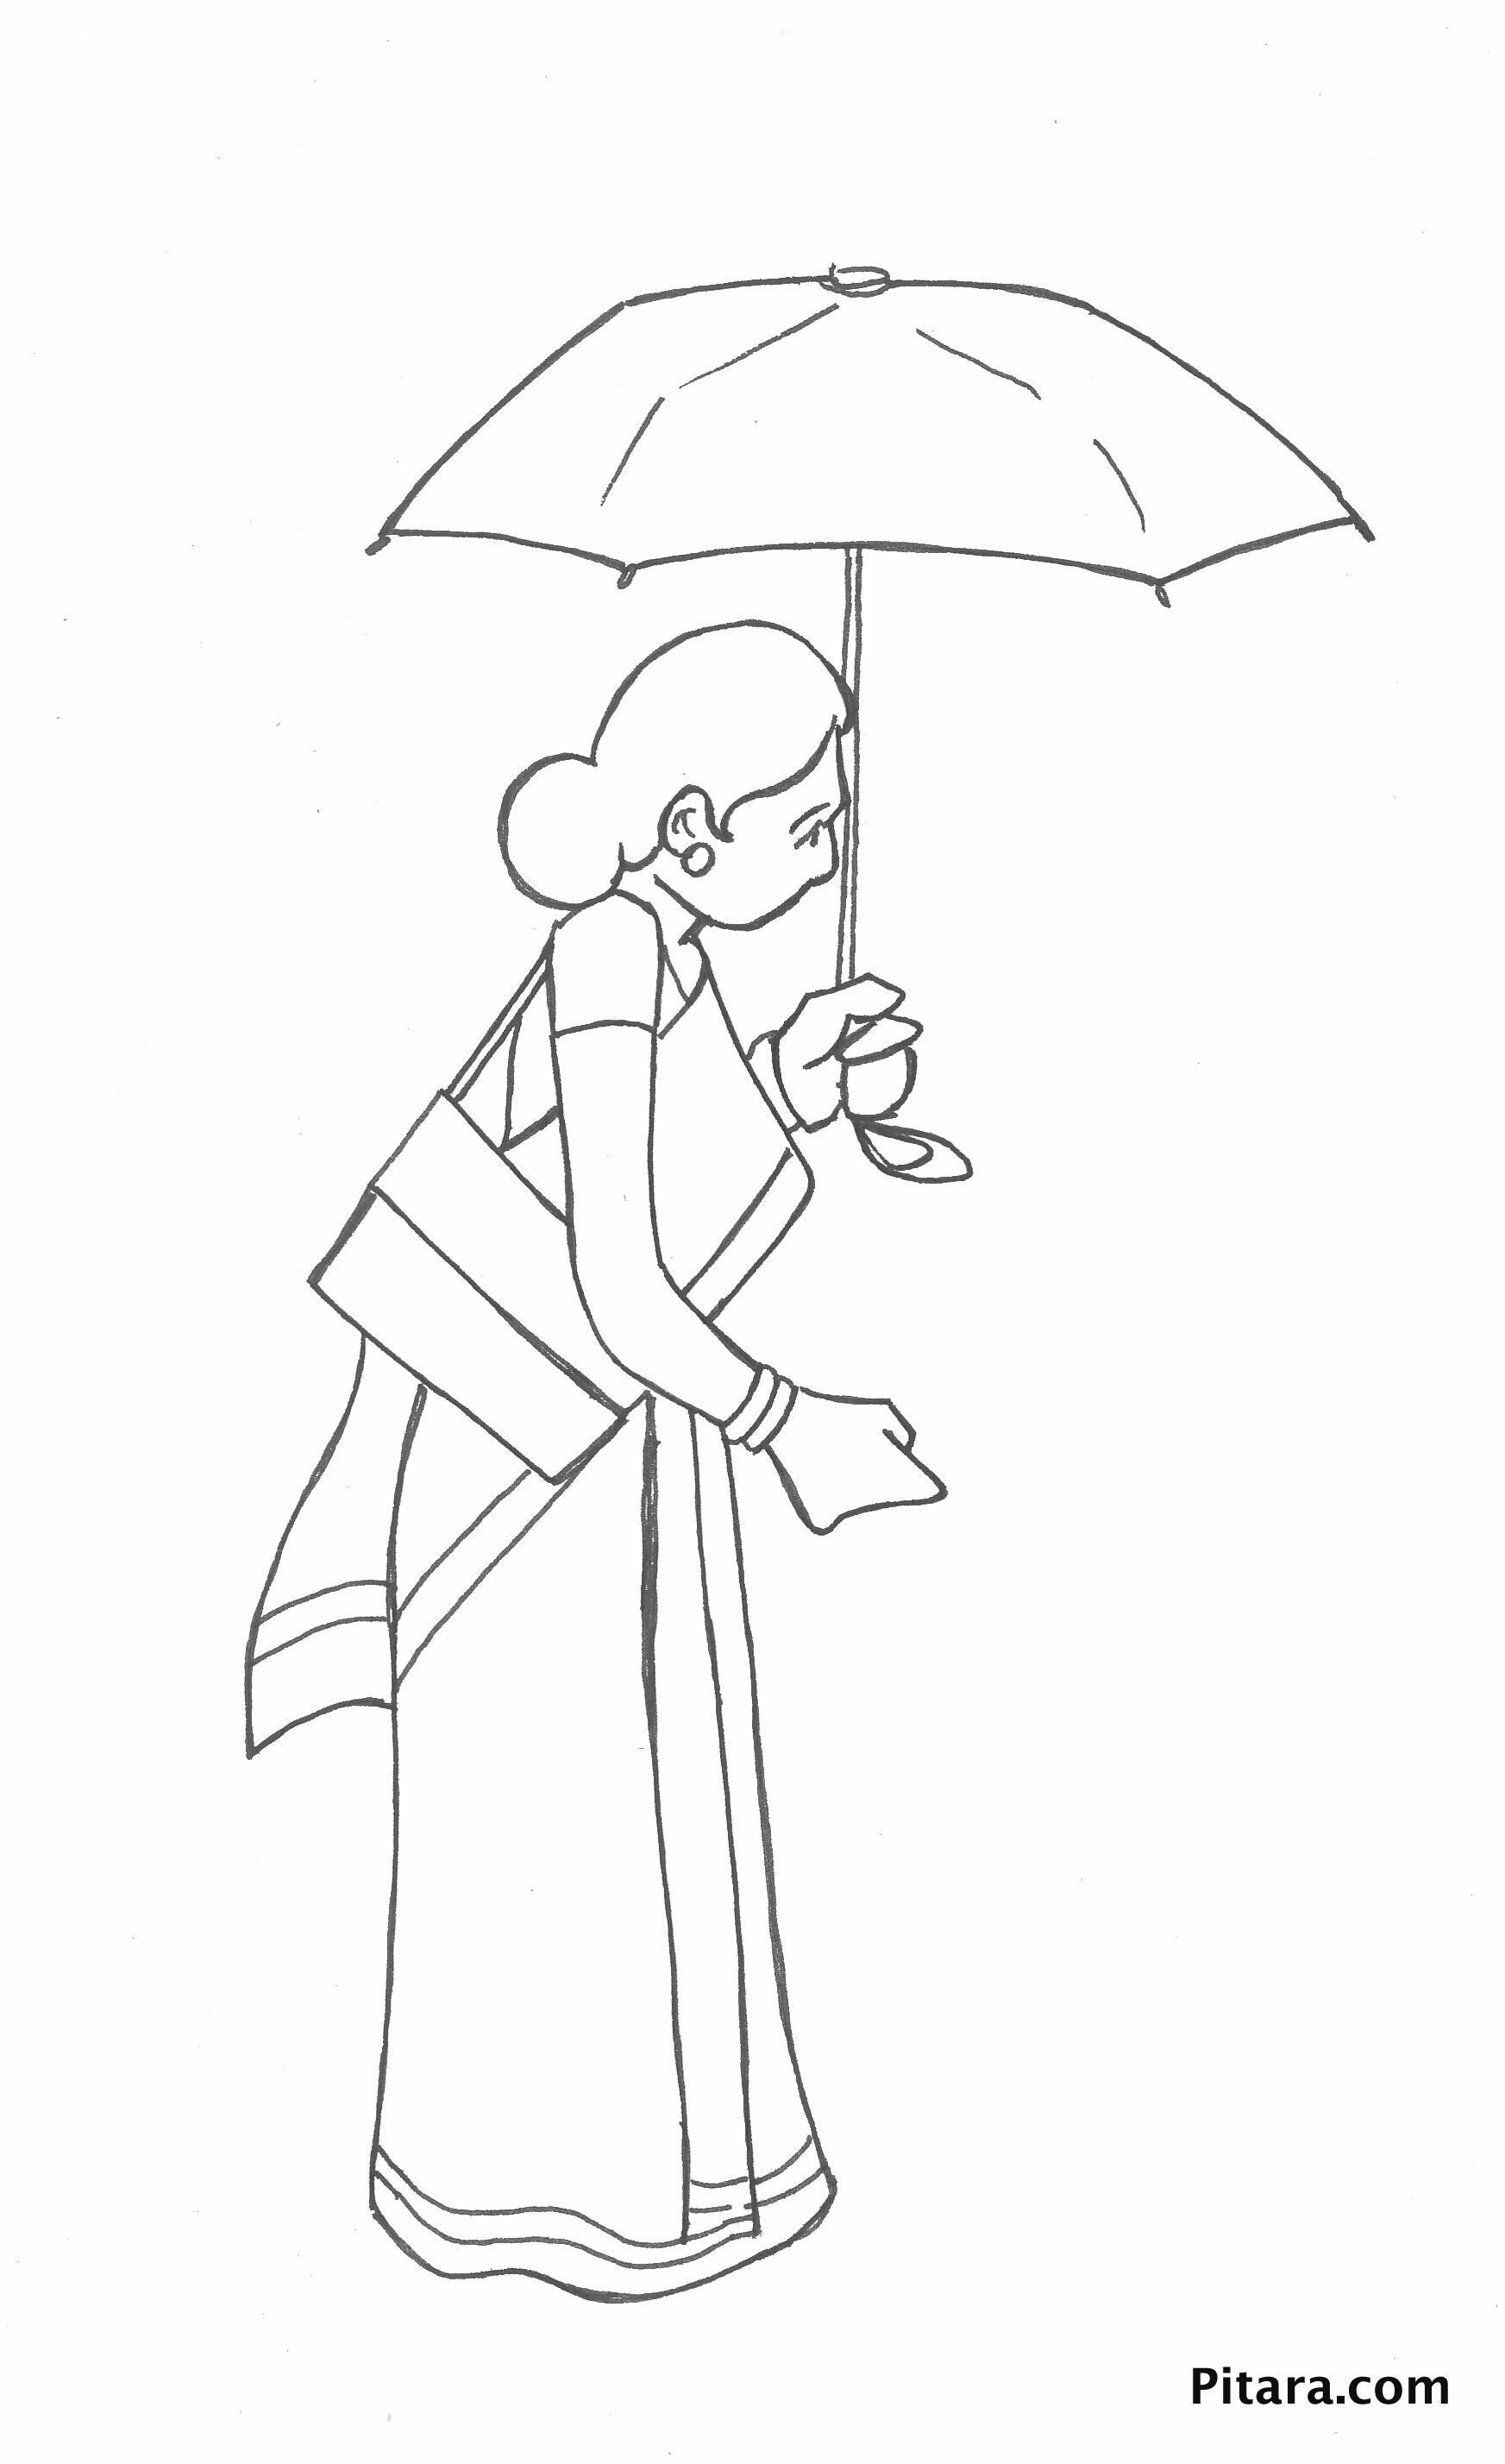 Woman with umbrella – Coloring page